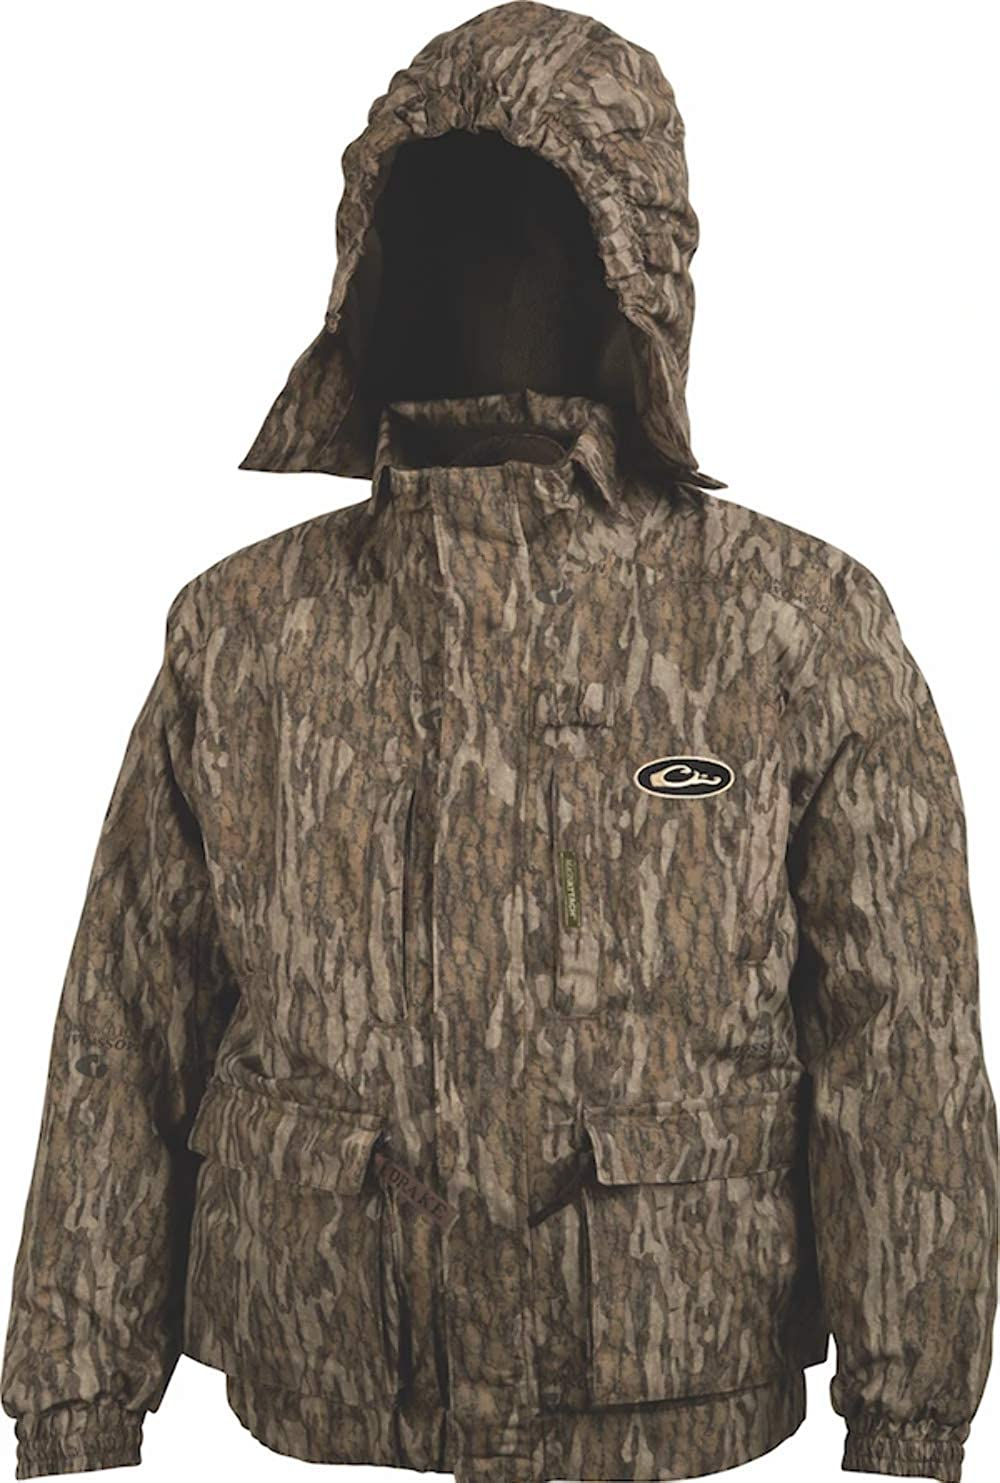 Drake LST Youth Eqwader Max 61% OFF 3 in 1 Jacket Waterfowl Wader Plus 2 Re Max 76% OFF